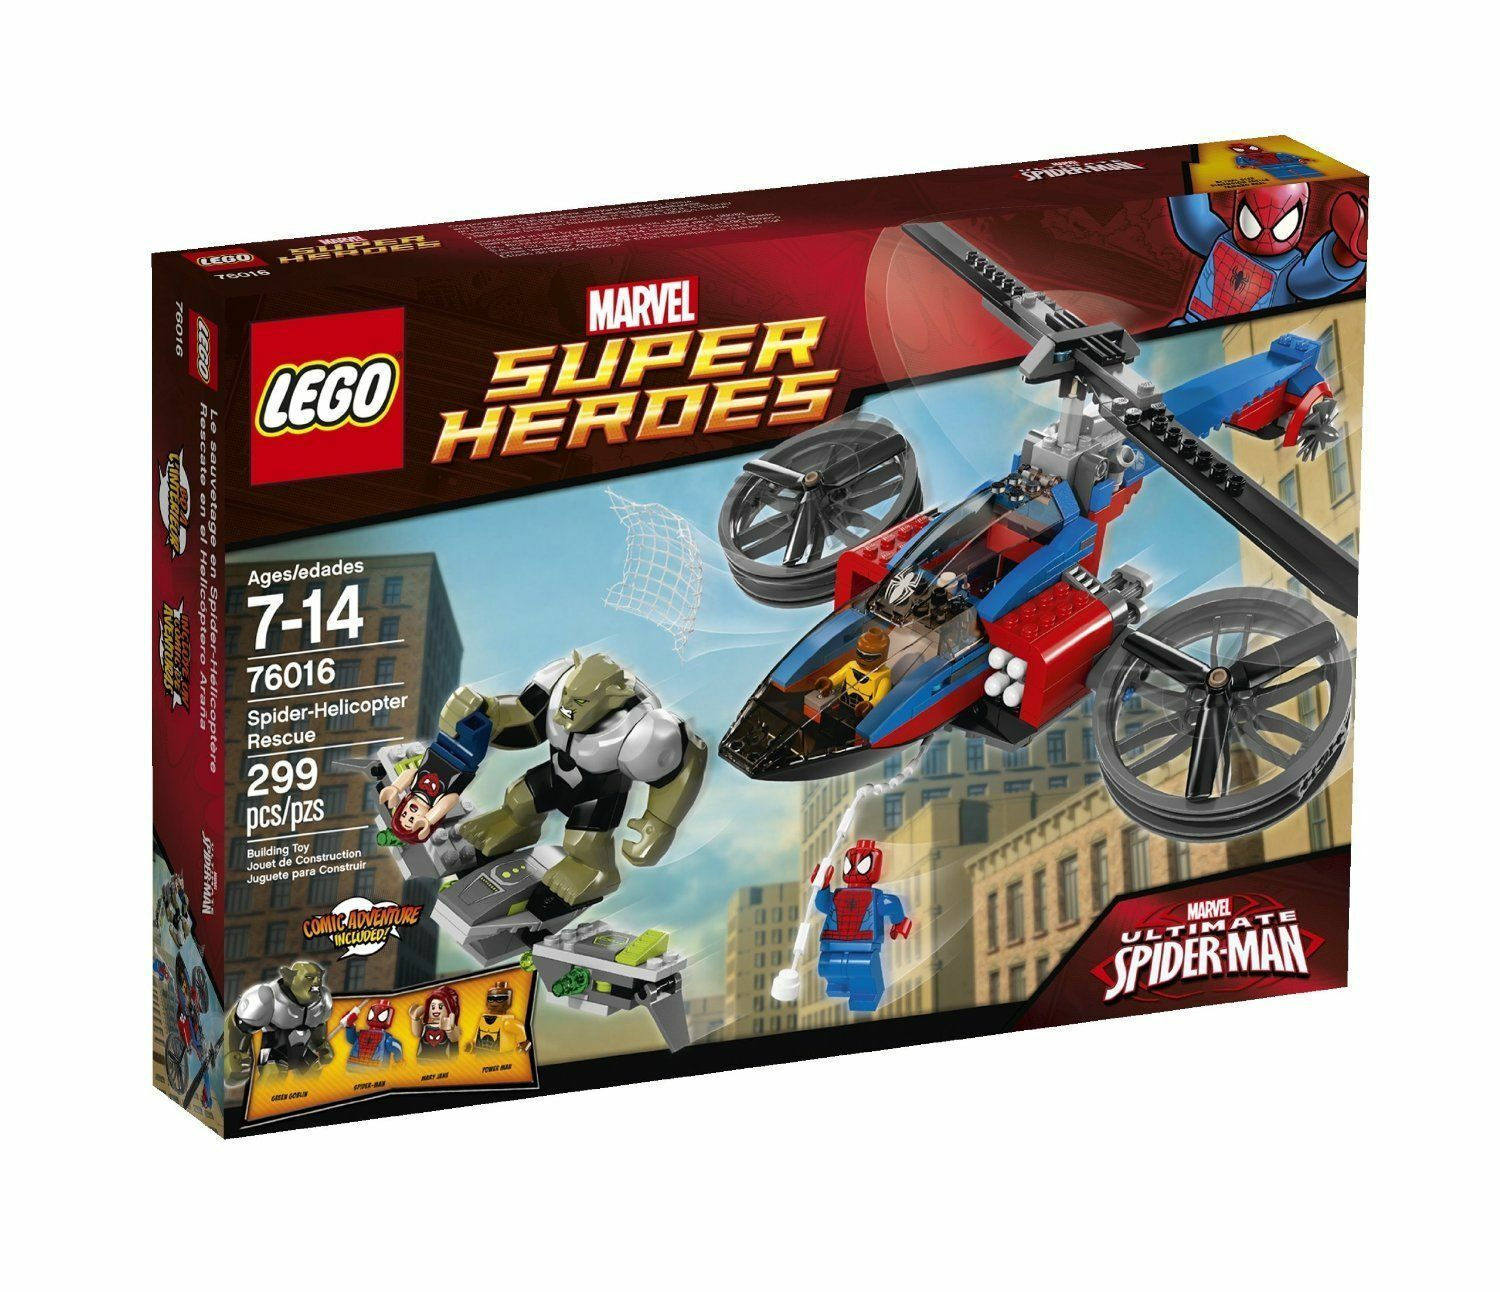 76016 SPIDER-HELICOPTER RESCUE lego NEW marvel super heroes legos SPIDERMAN